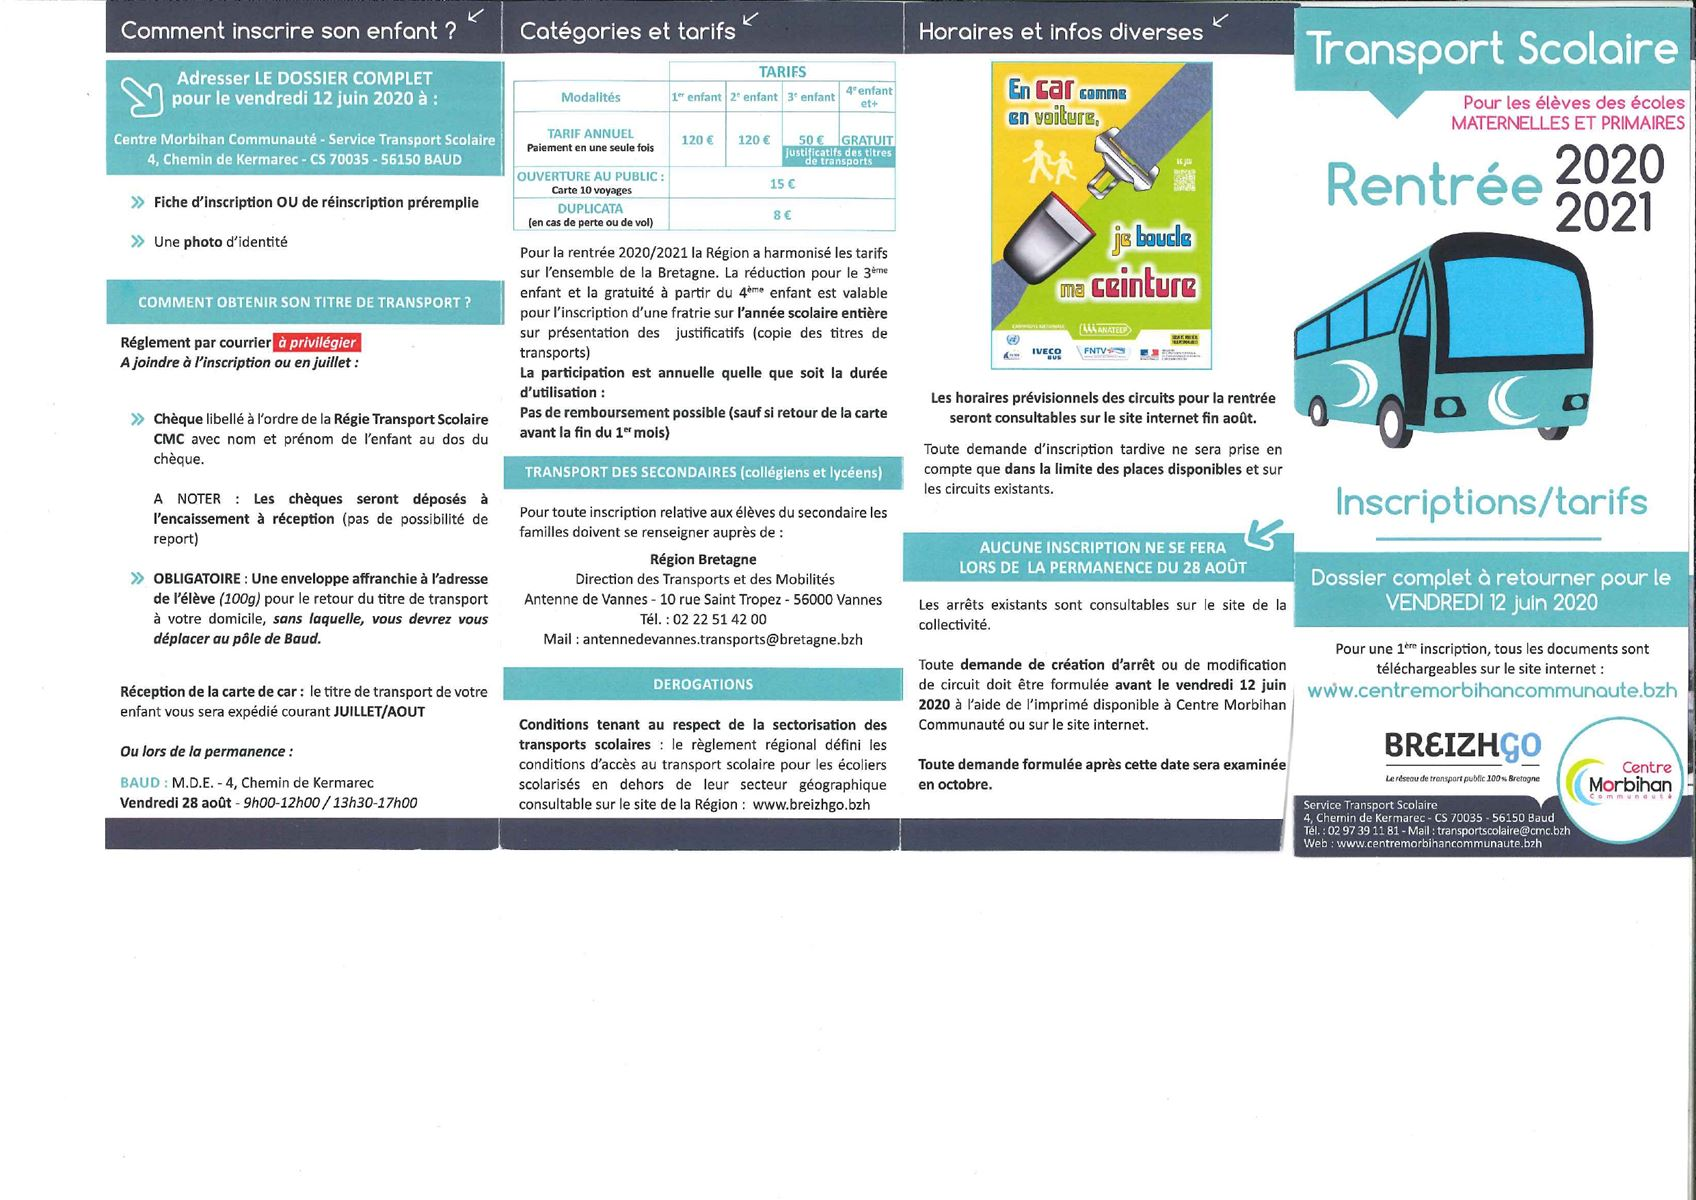 Transport Scolaire - Flyer_page-0001.jpg